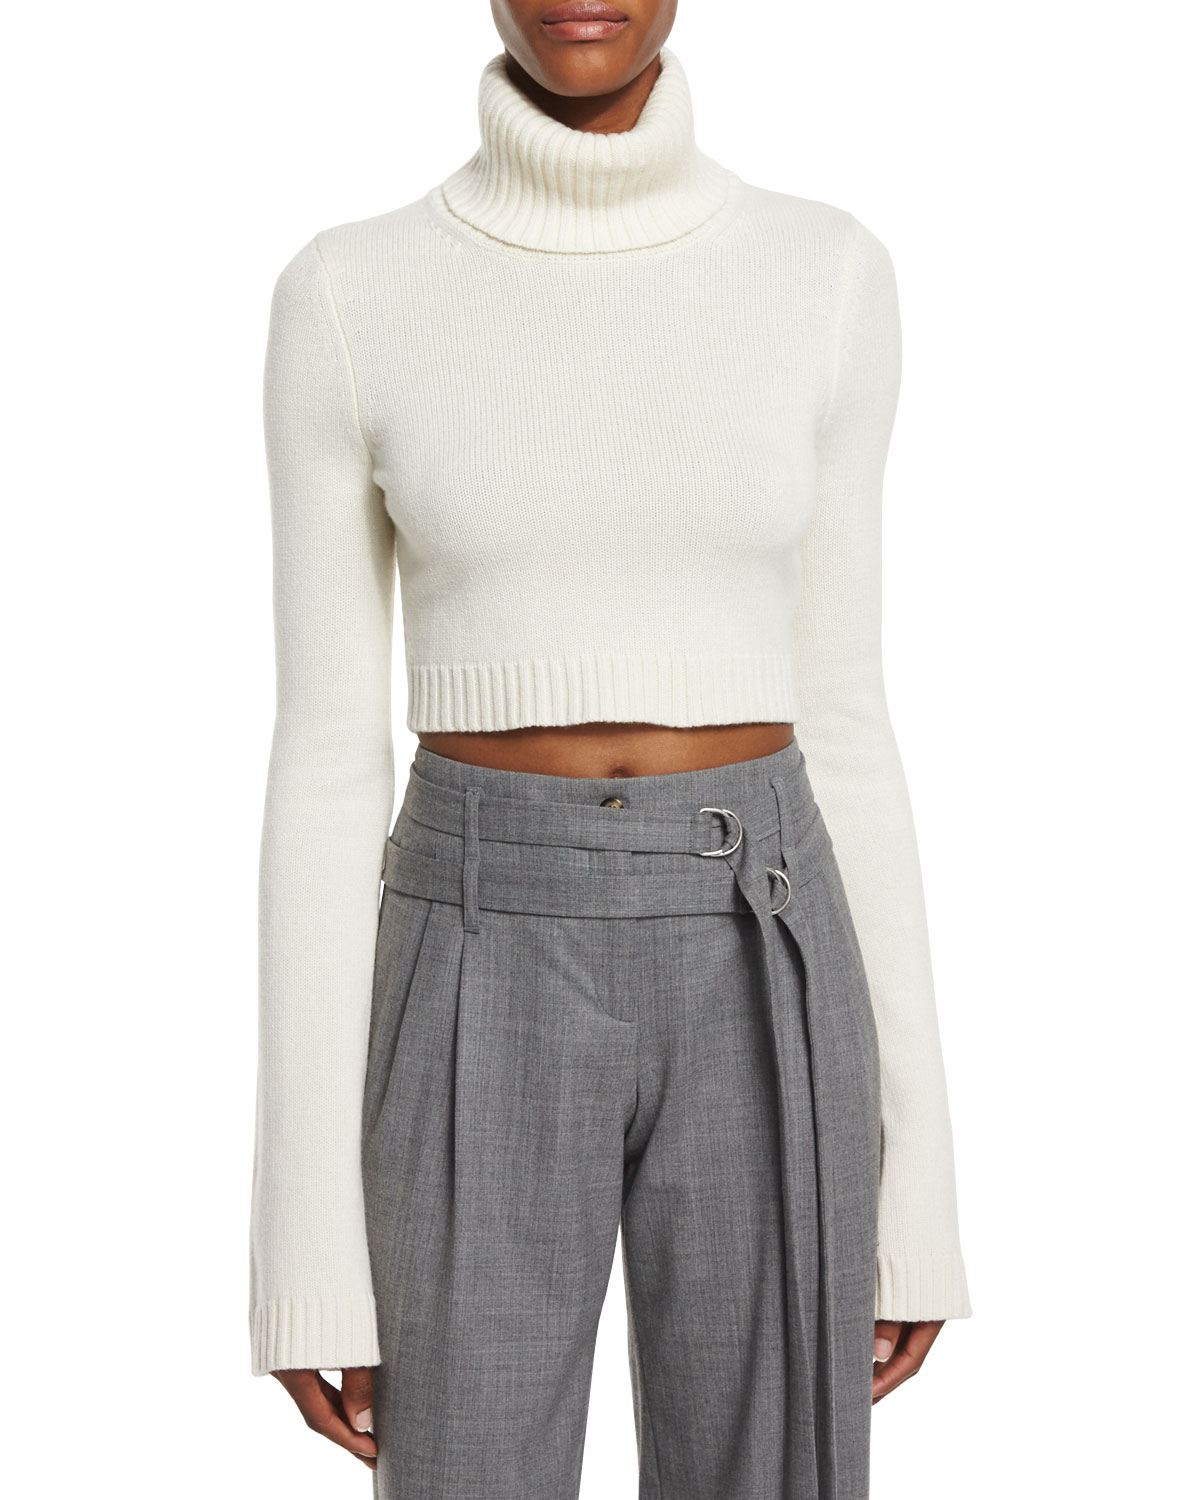 Michael Kors Collection Cropped Cashmere Turtleneck Sweater, White, Women's, Size: MEDIUM